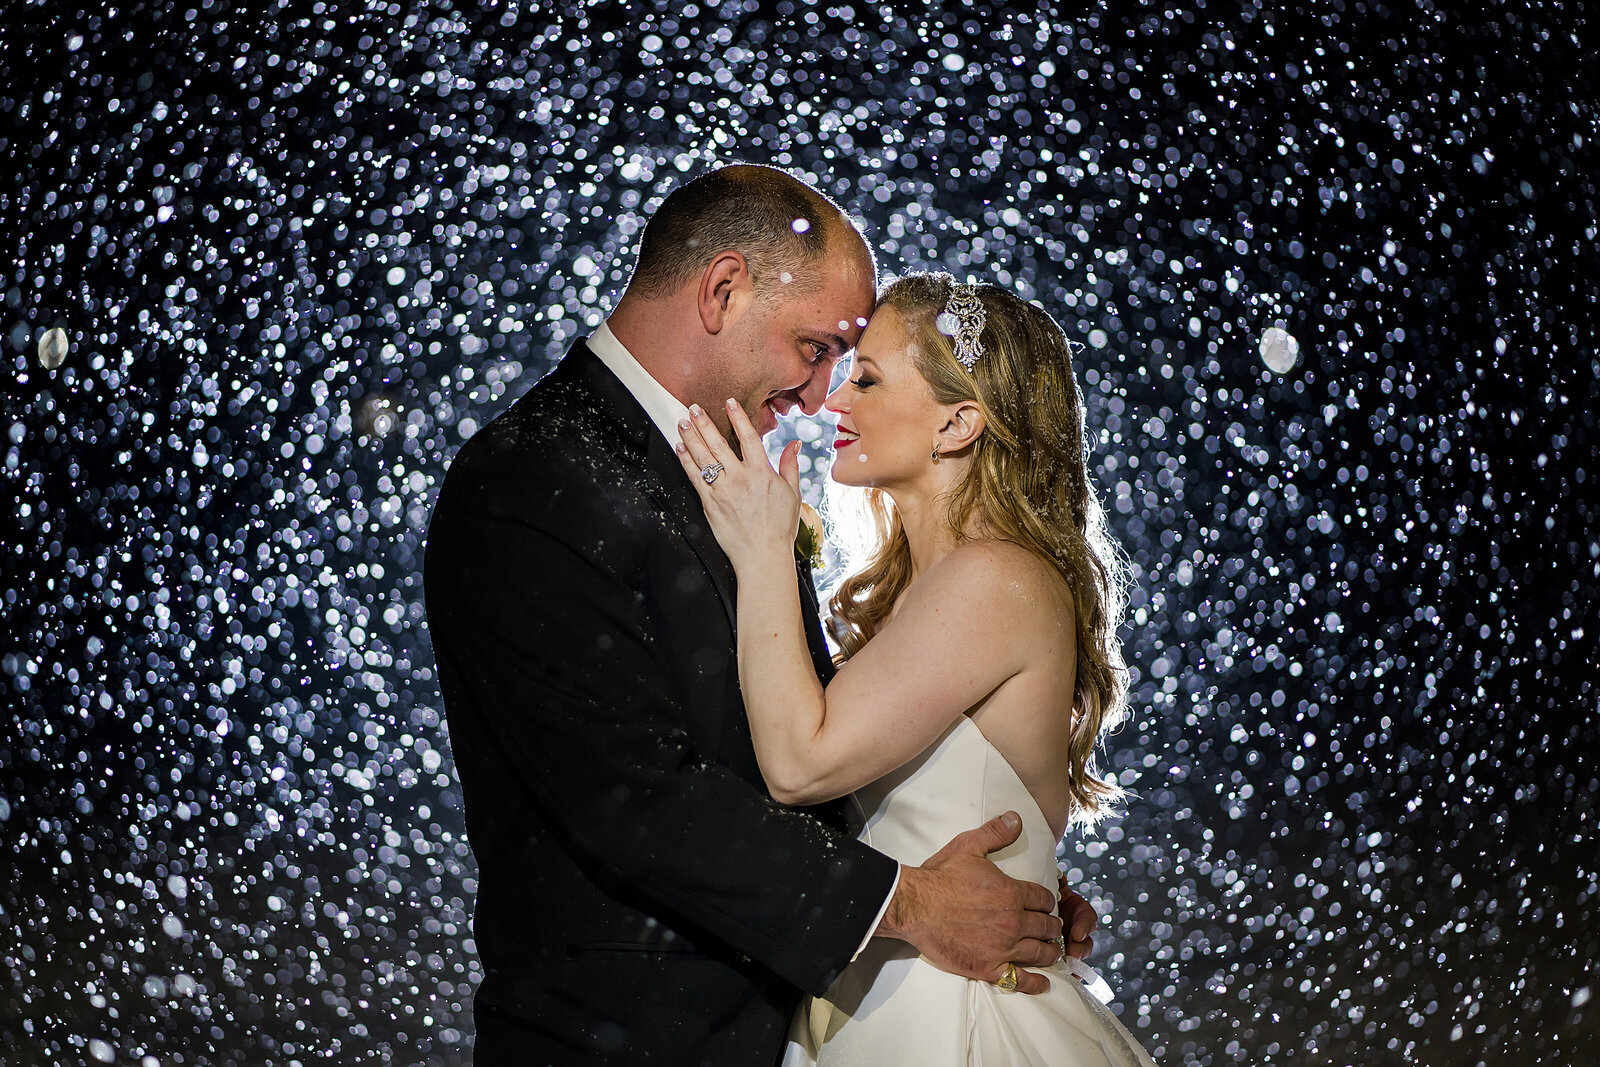 bride and groom stand with foreheads touching surrounded by falling snow at their January wedding